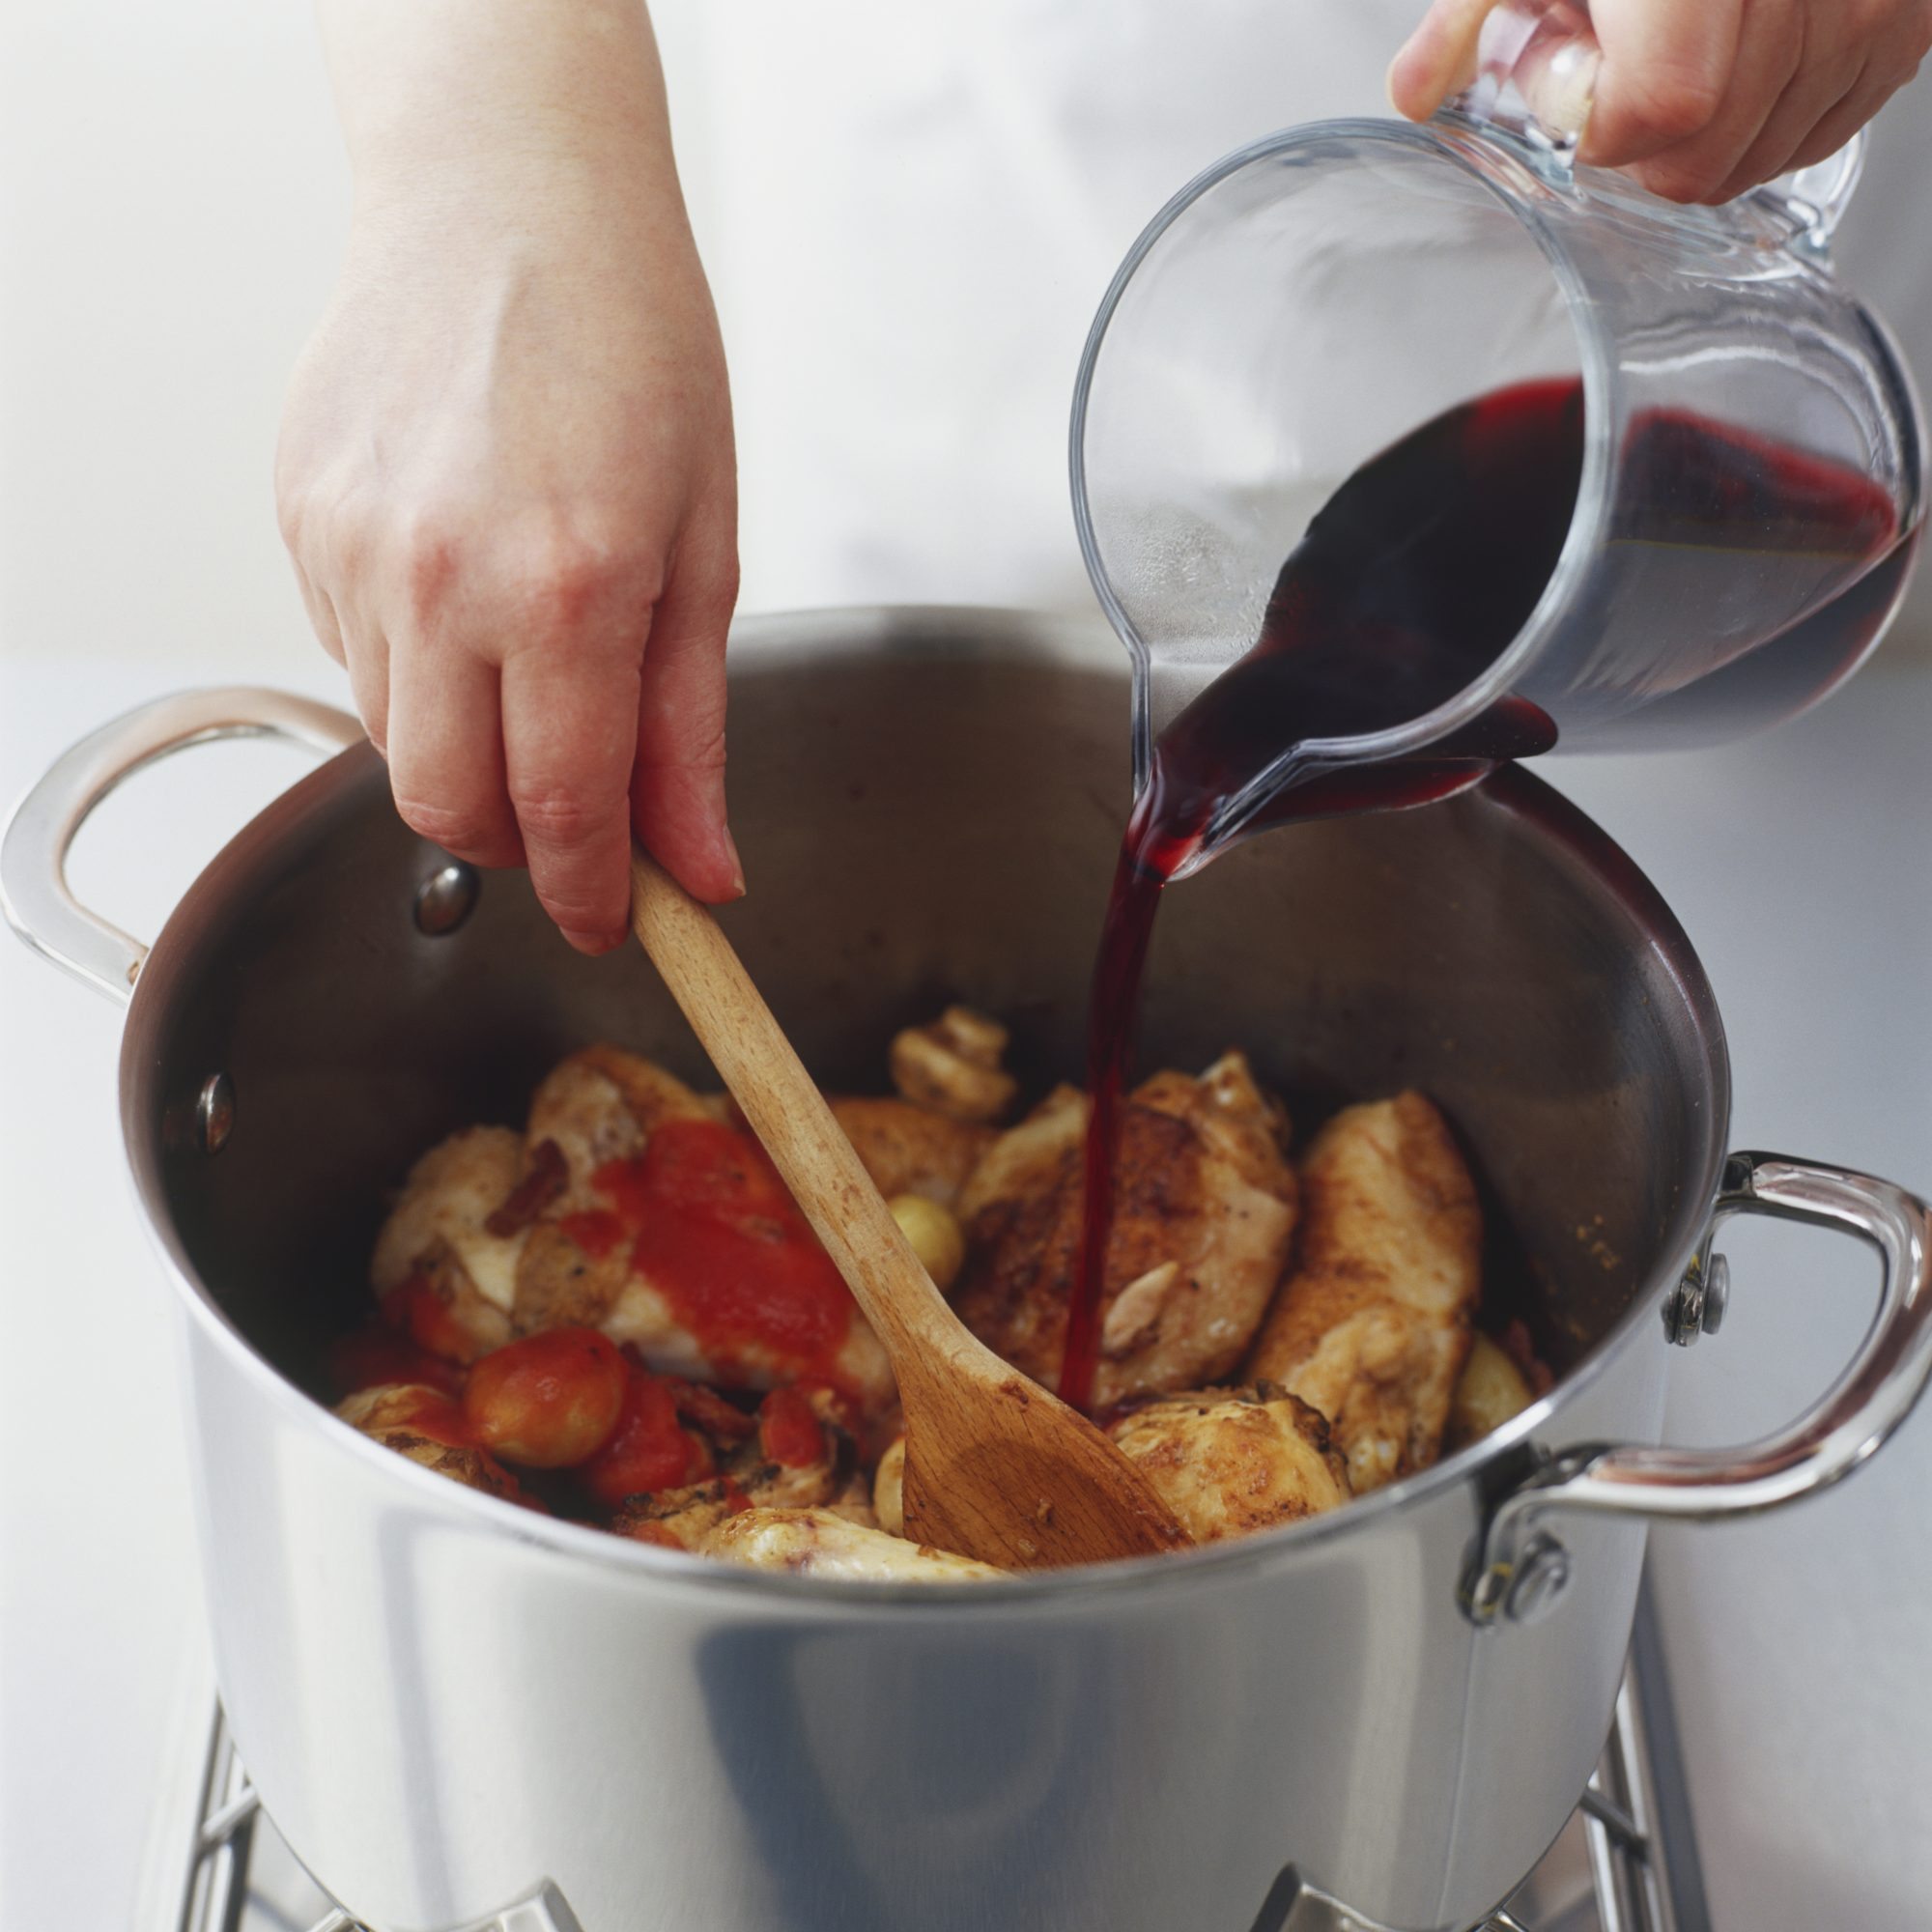 getty-cooking-wine-image-2